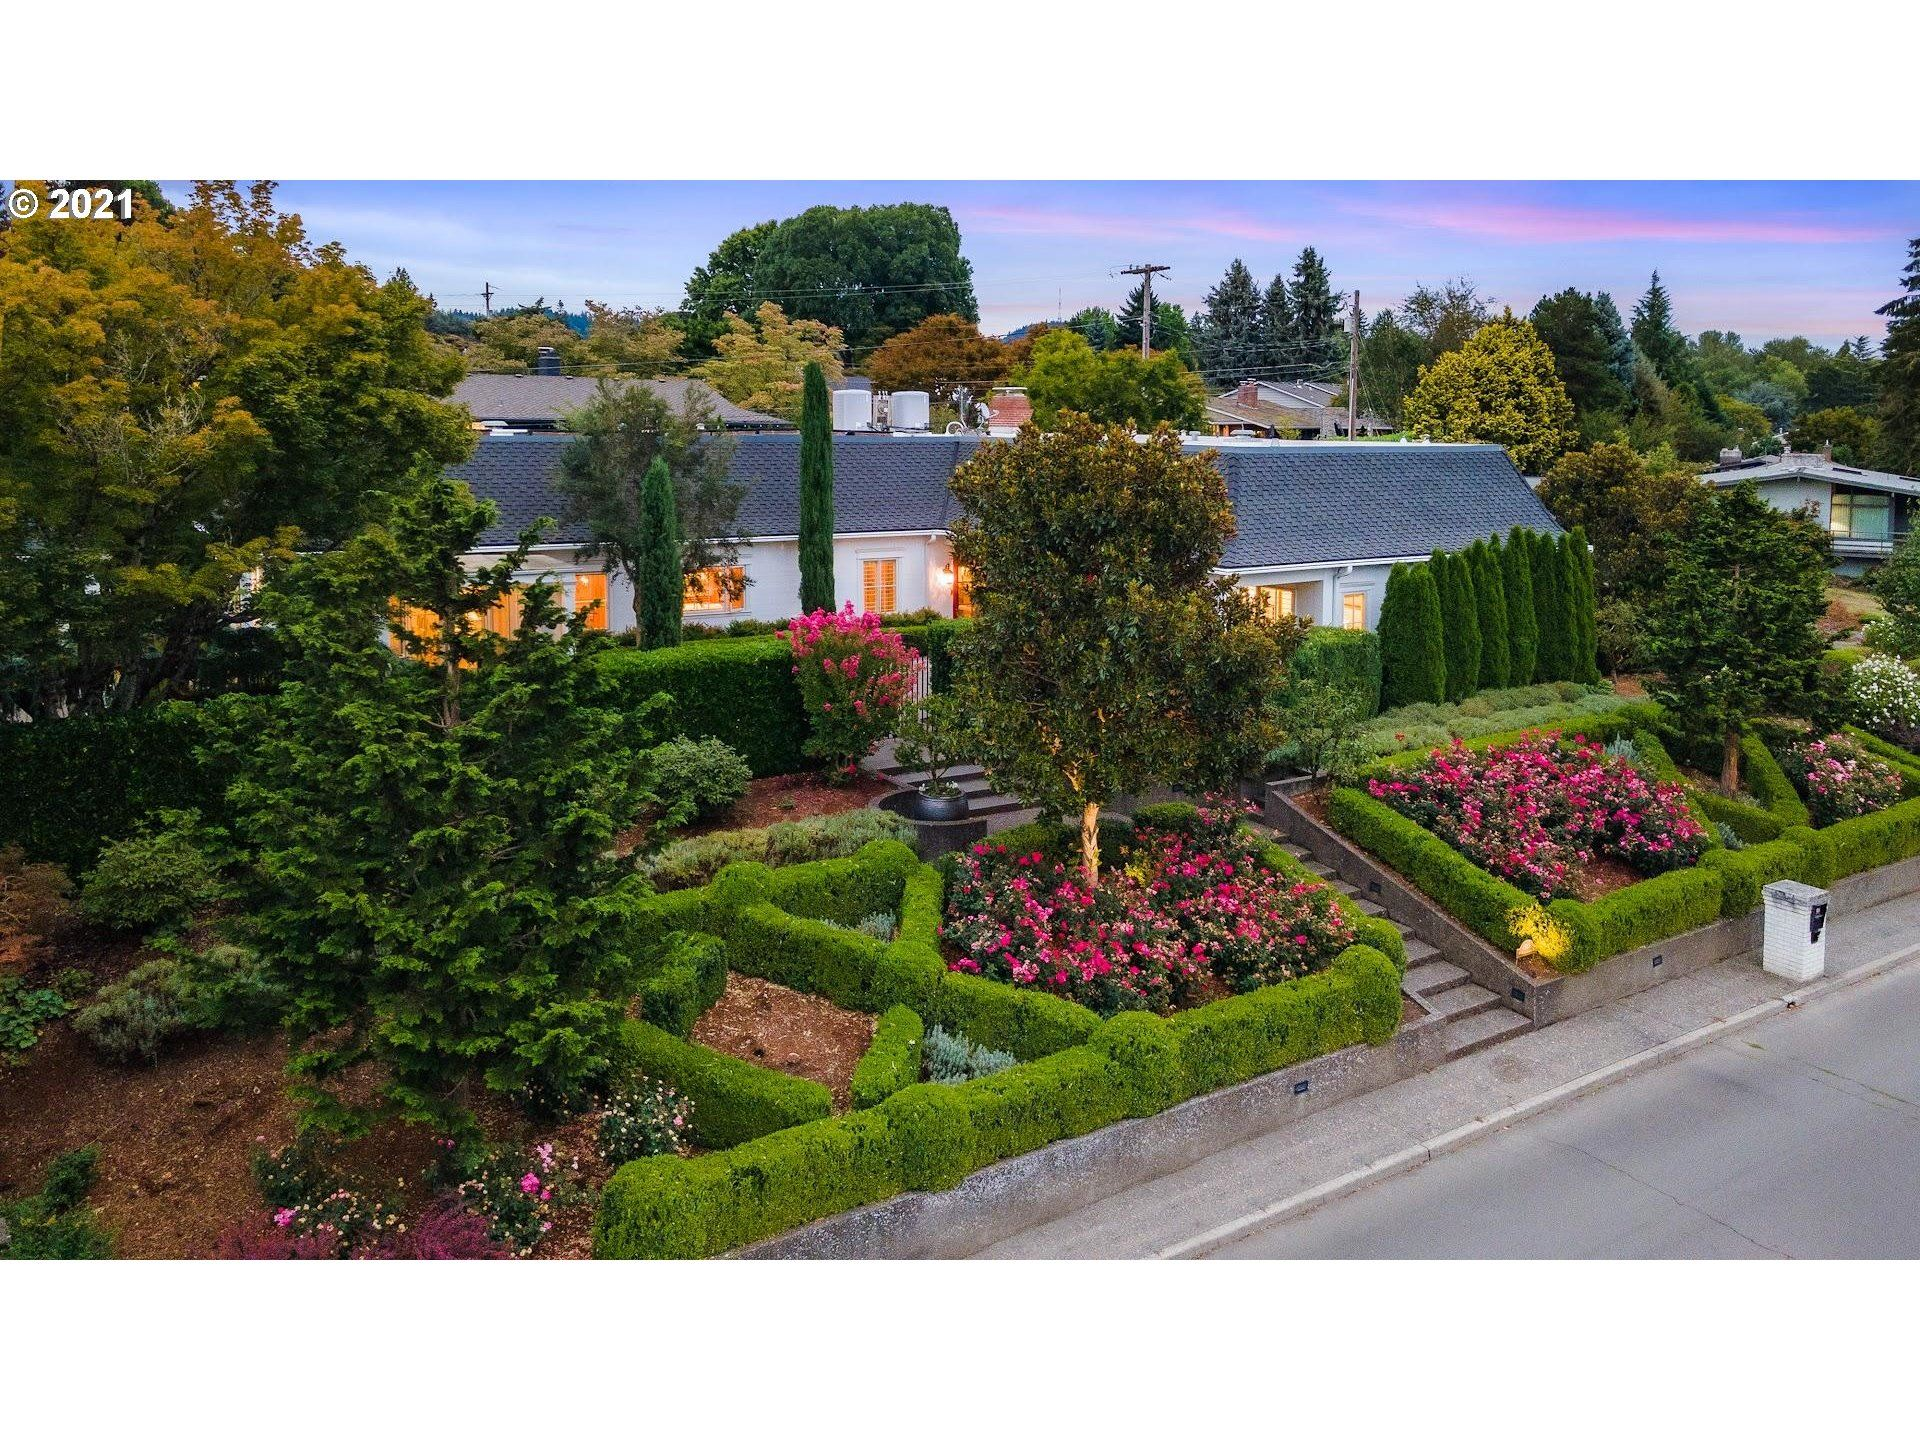 7565 SW WILLOWMERE DR, Portland, OR 97225 - MLS#: 21561978